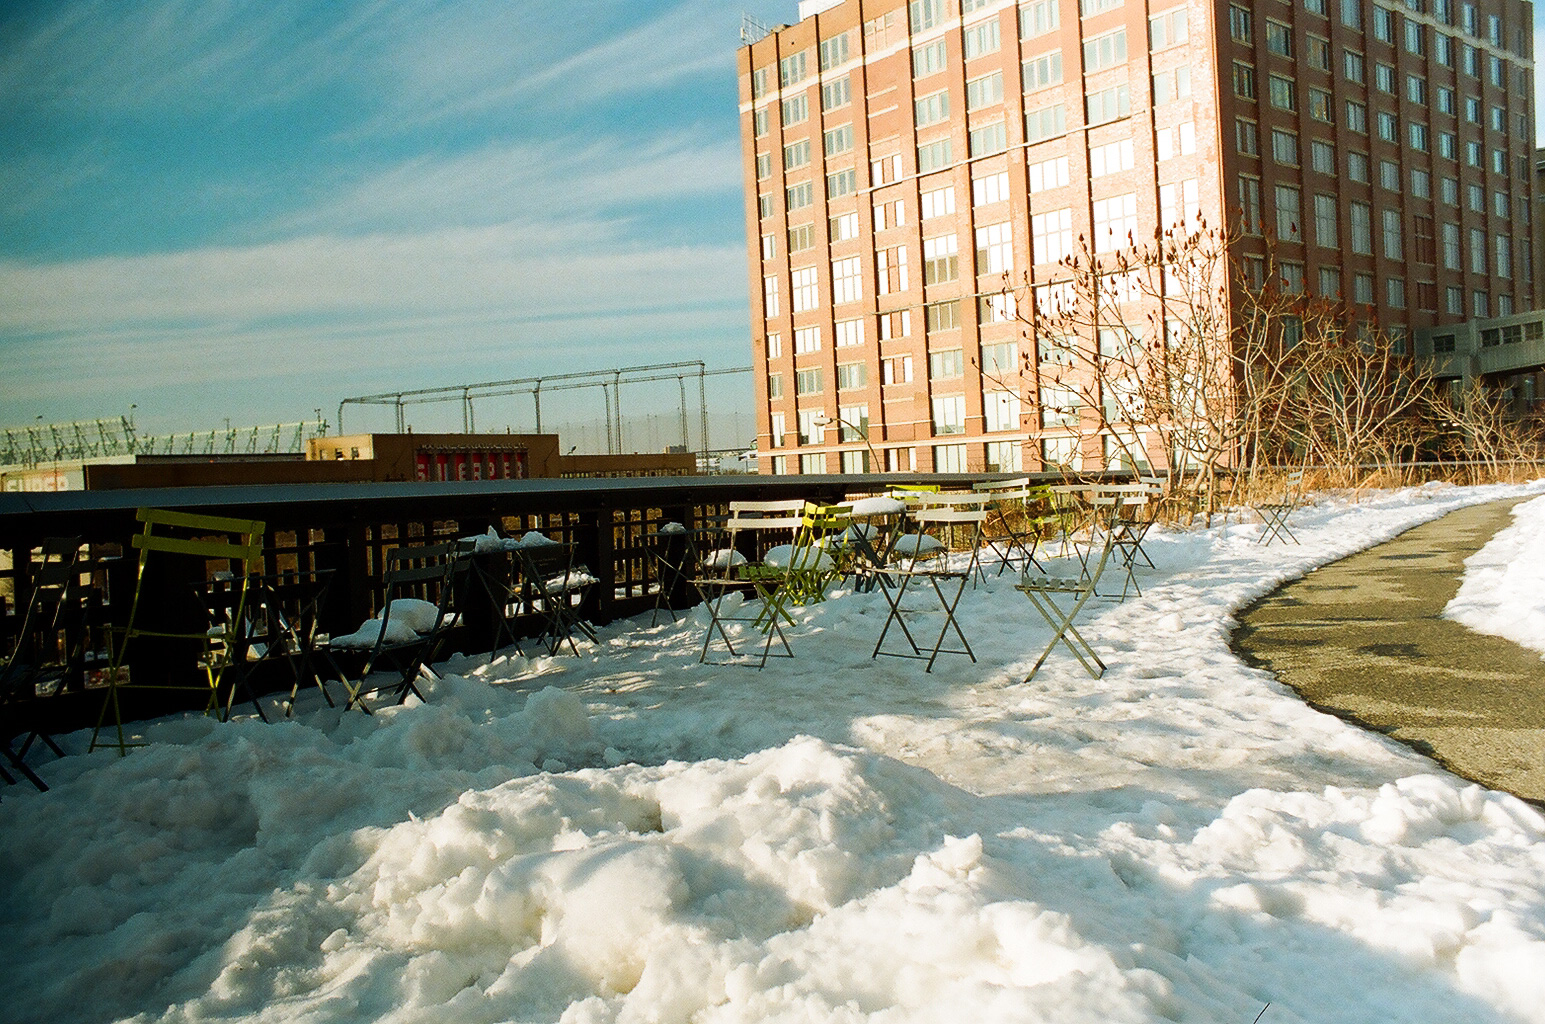 Snow along the High Line. No one wanted to sit here.